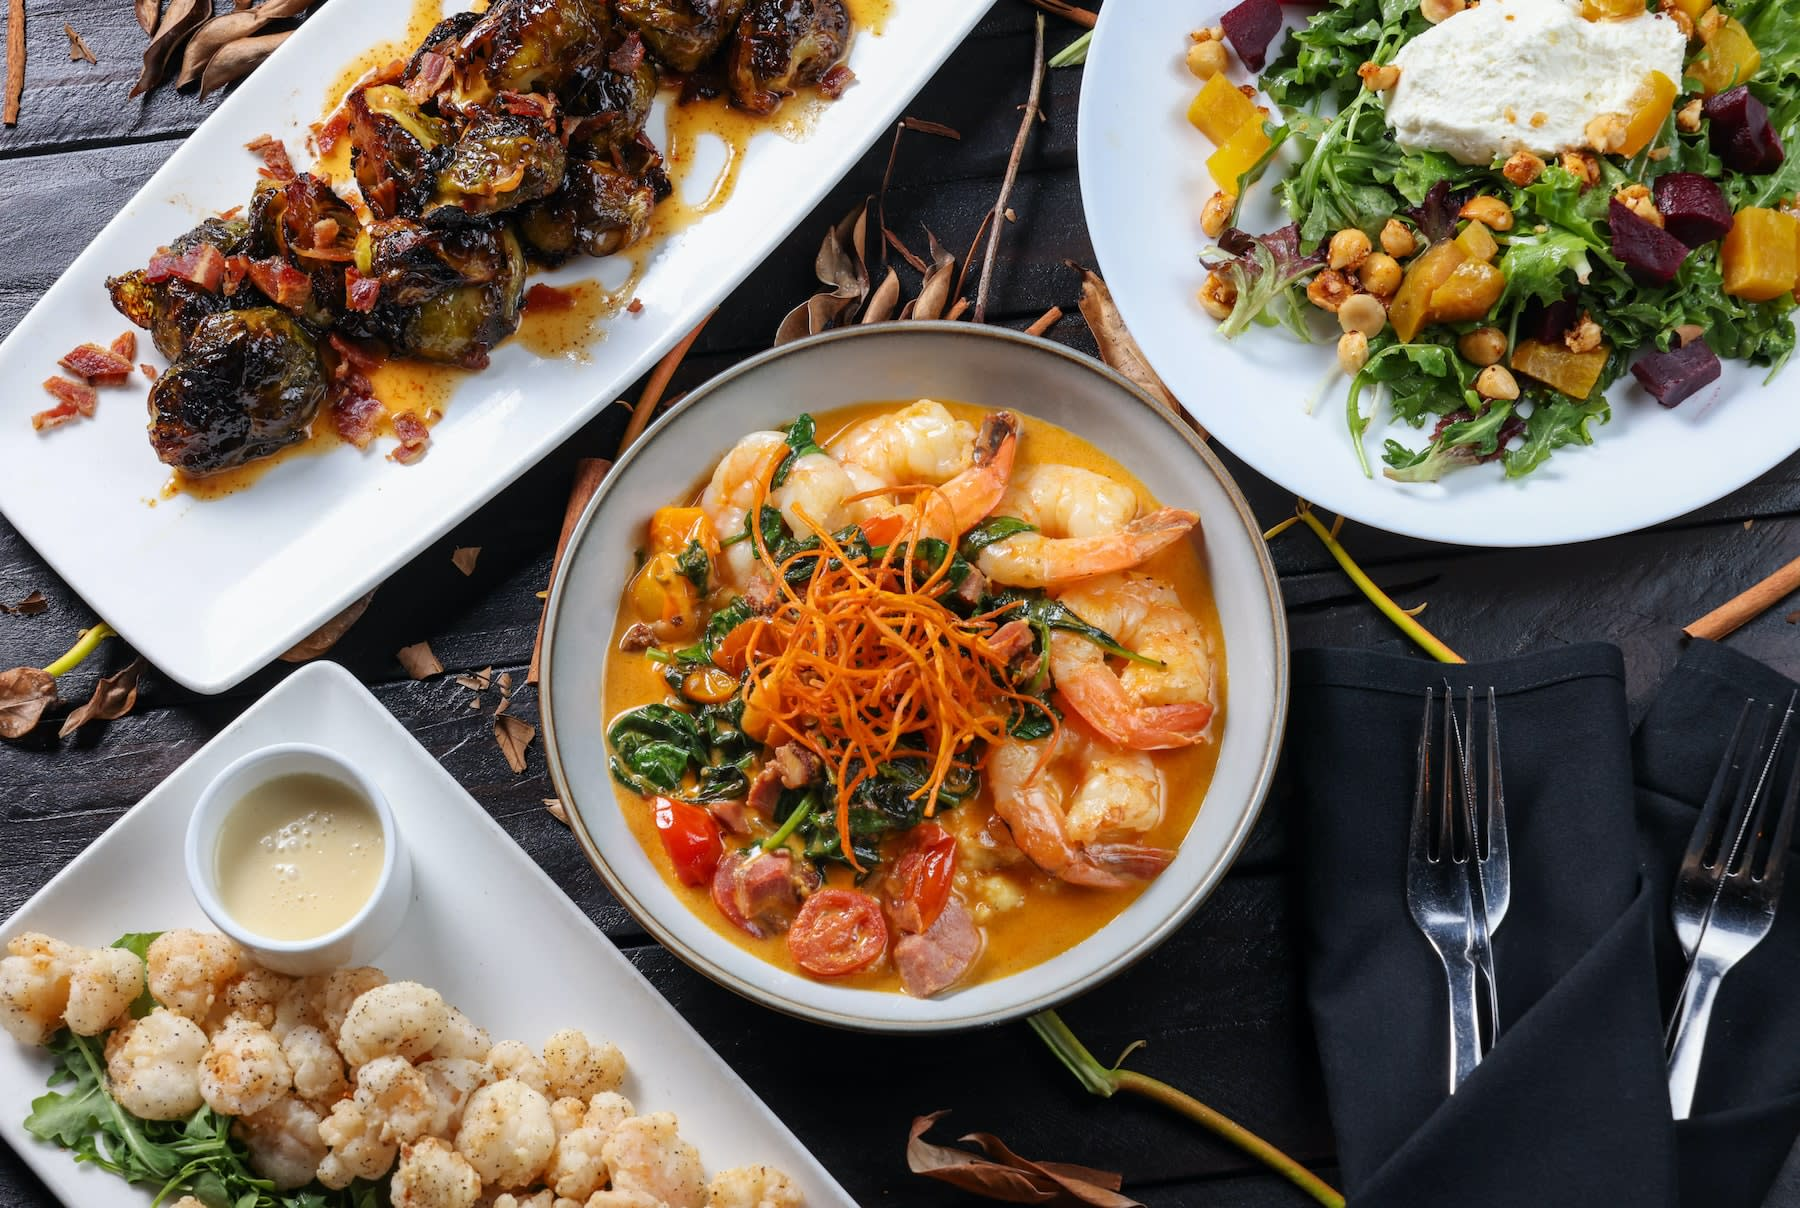 6 Fall-Inspired Dishes in Dana Point to Get You in the Cozy Spirit